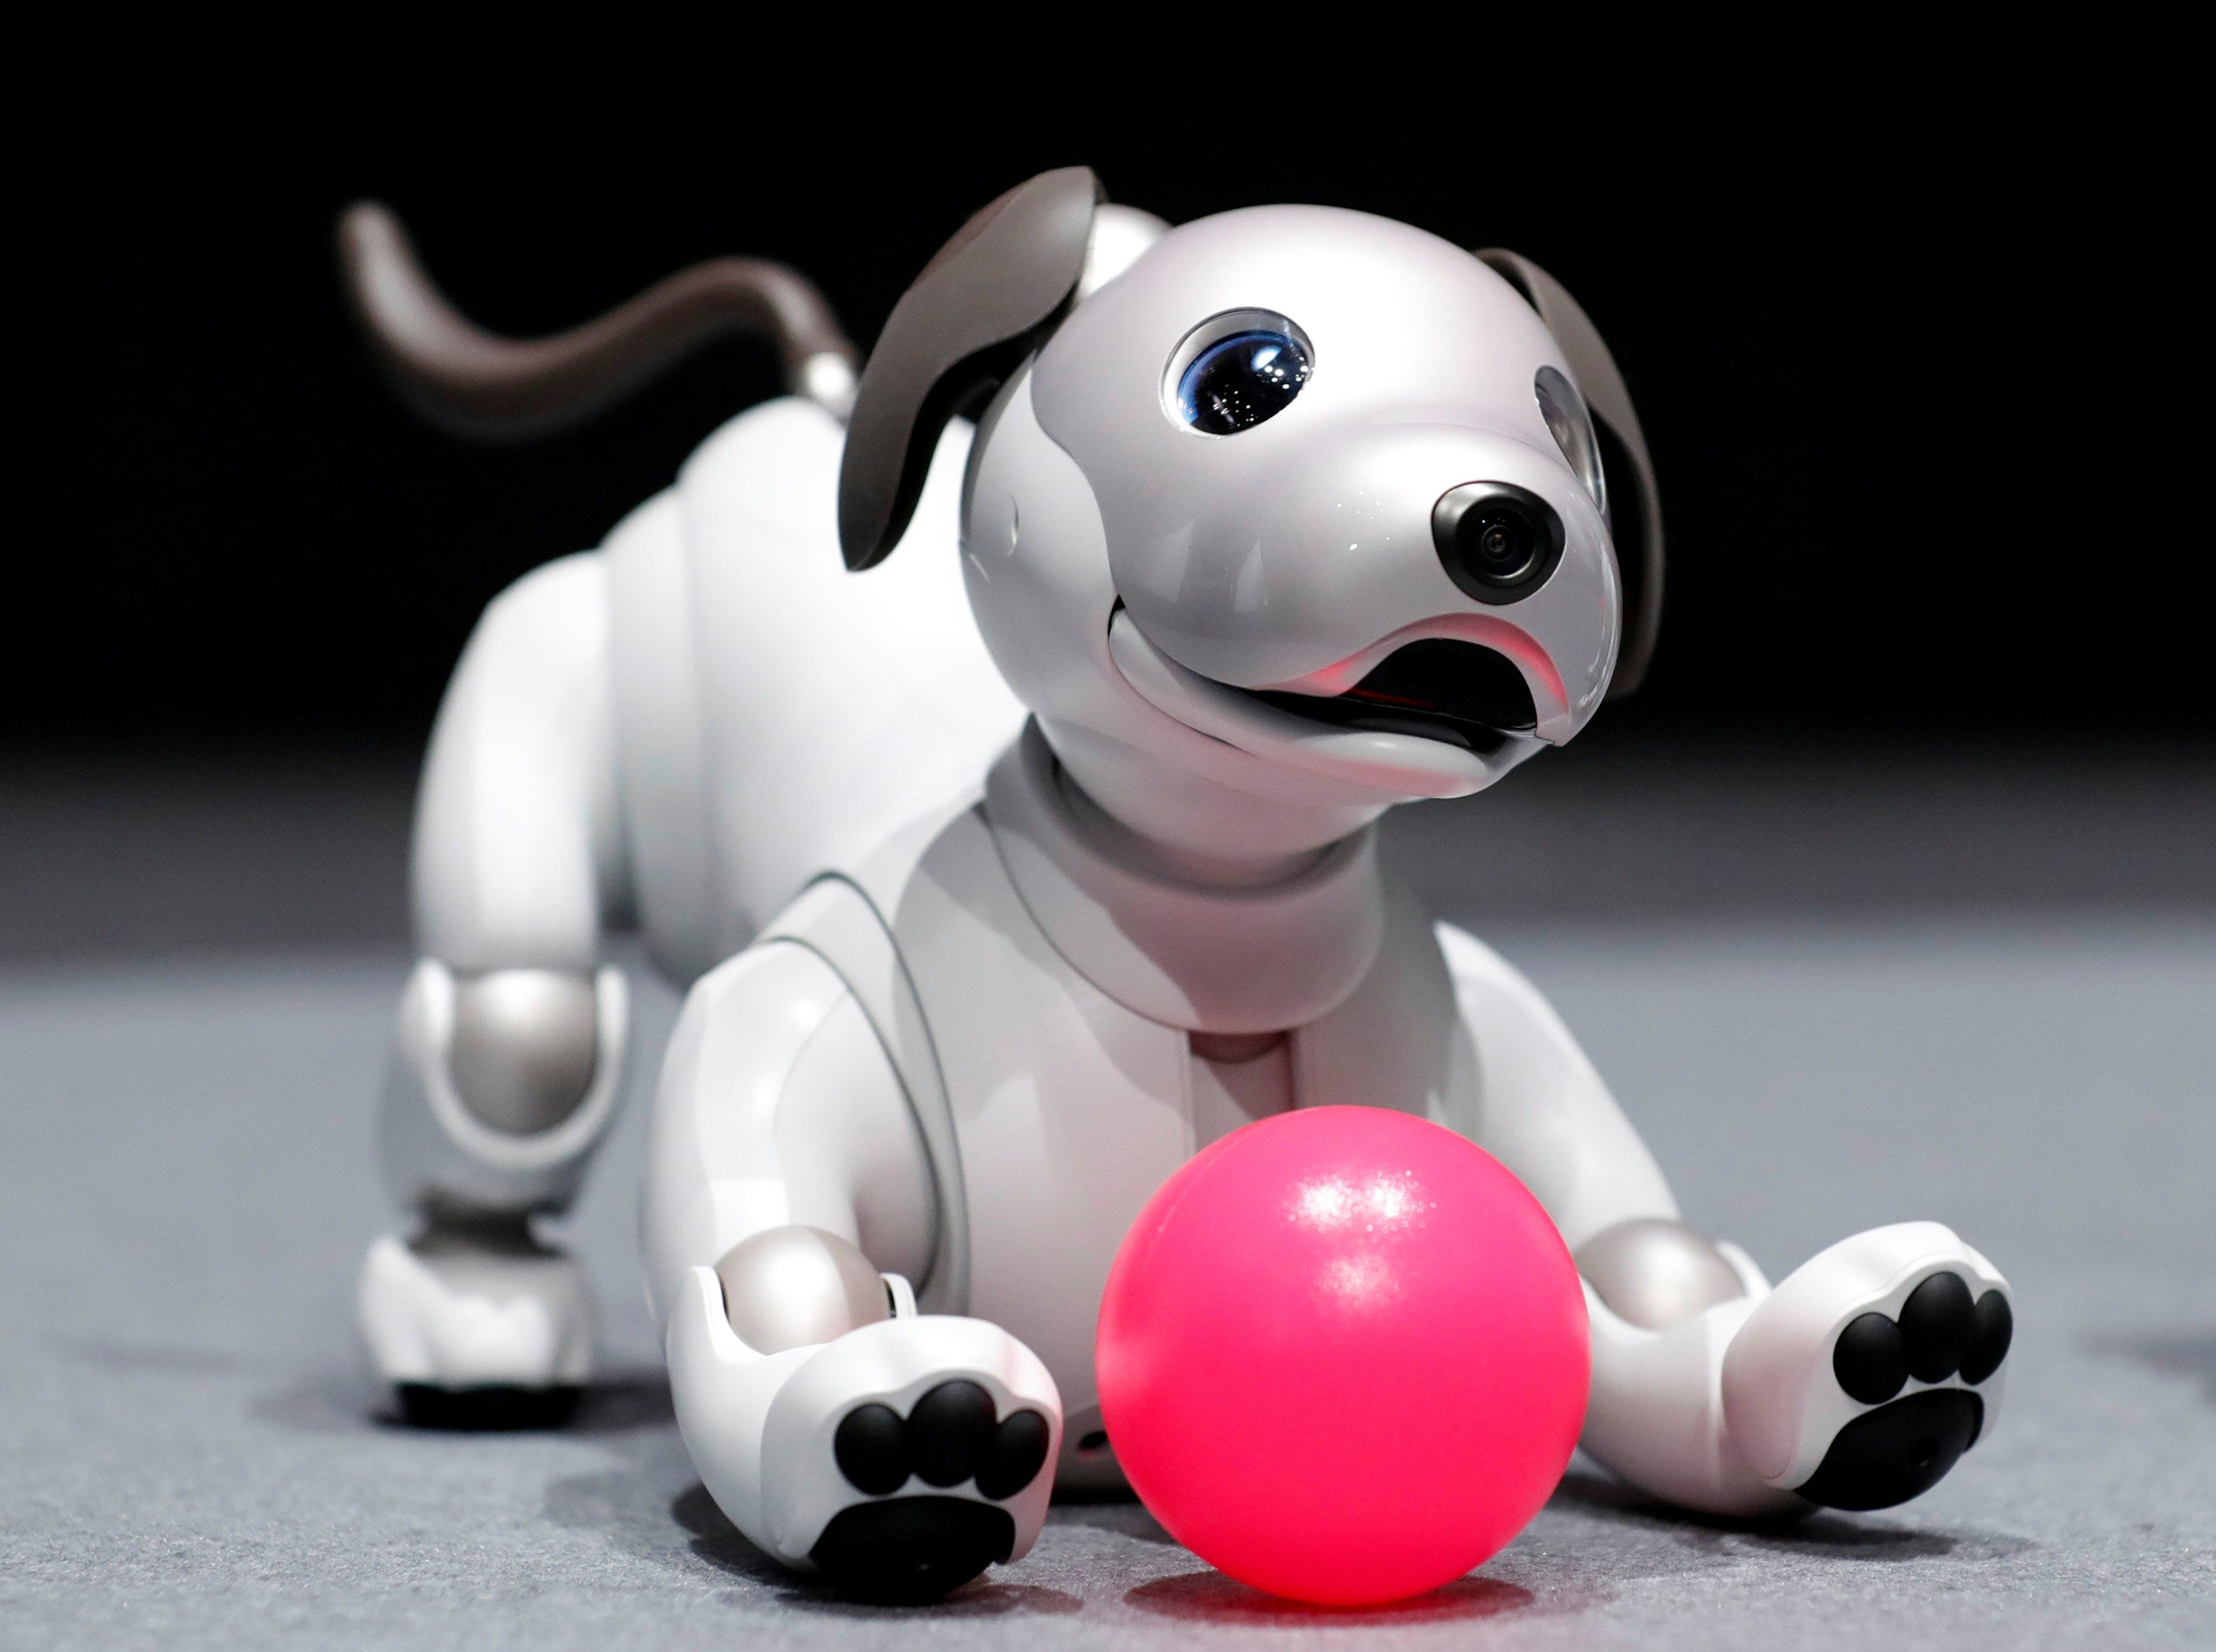 Wallpaper Sony Aibo, robot, dog, 4k, Hi-Tech #16415I've always believed that wallpaper  is a way to shape human perception.